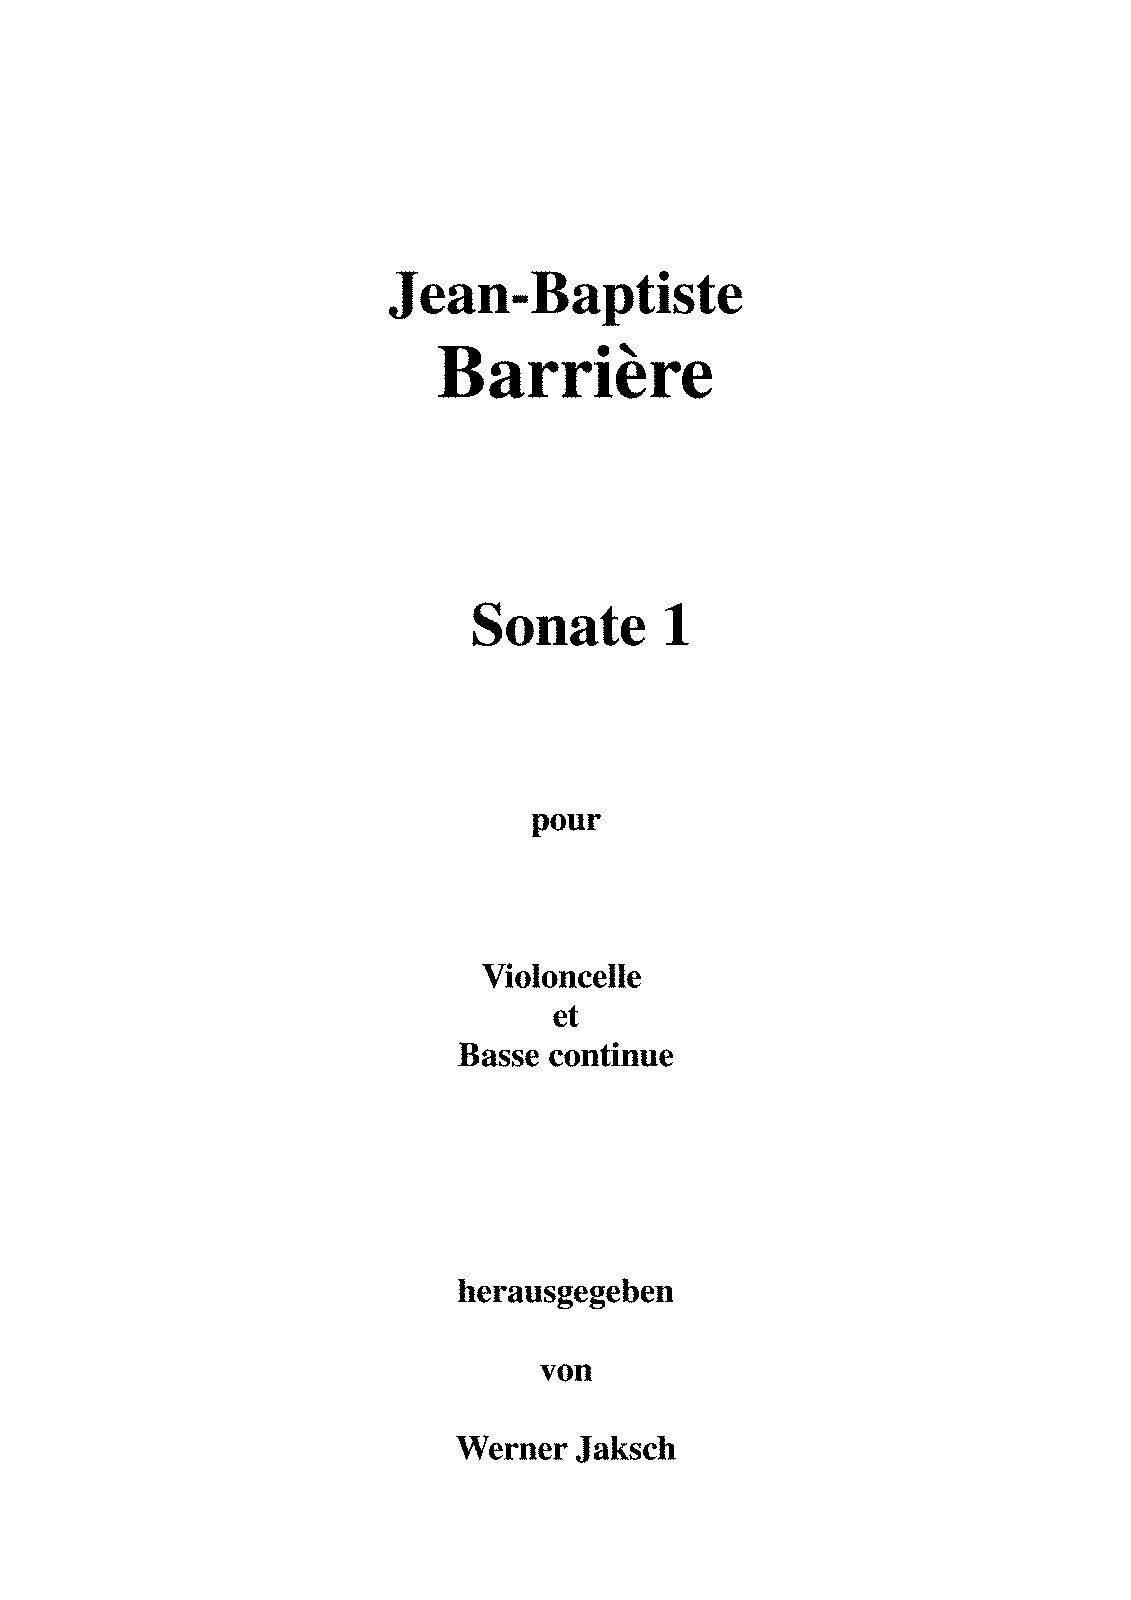 PMLP122854-barriere part.pdf